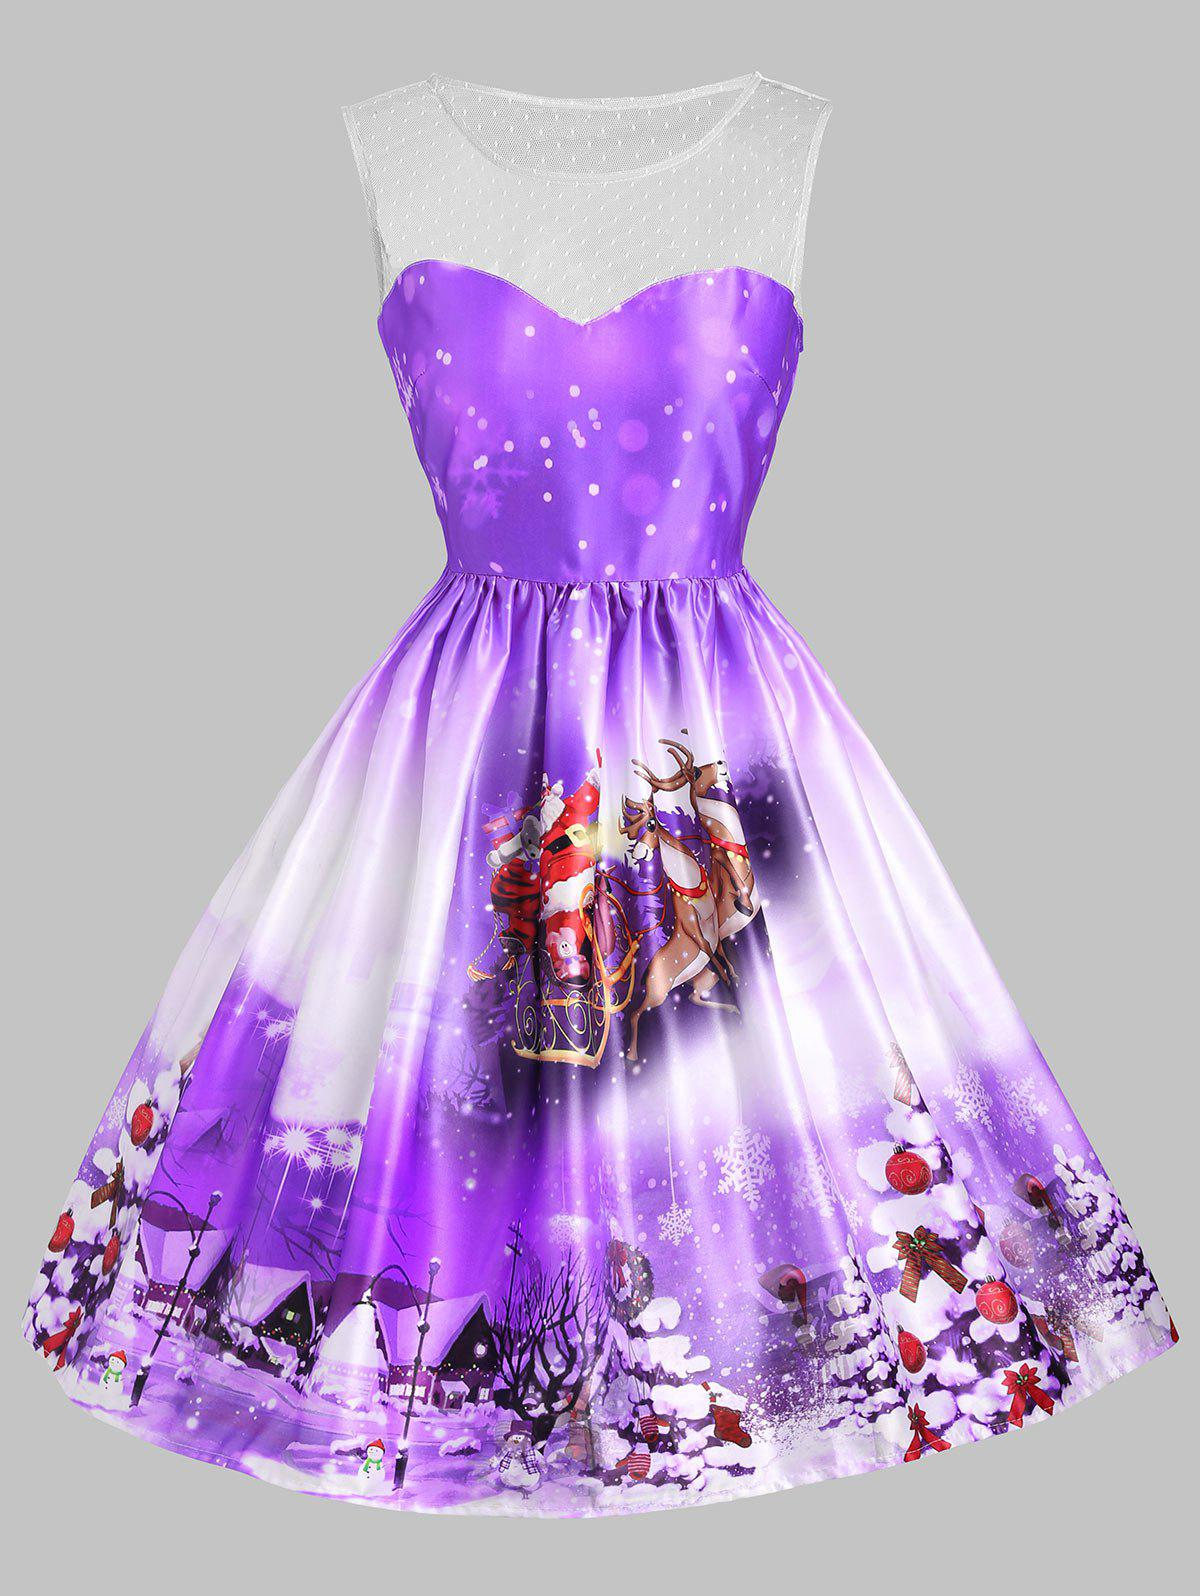 Christmas Tree Sled Mesh Insert DressWOMEN<br><br>Size: XL; Color: PURPLE; Style: Vintage; Material: Cotton,Polyester; Silhouette: A-Line; Dresses Length: Knee-Length; Neckline: Round Collar; Sleeve Length: Sleeveless; Embellishment: Mesh; Pattern Type: Animal,Plant; With Belt: No; Season: Fall,Spring,Summer; Weight: 0.3500kg; Package Contents: 1 x Dress;